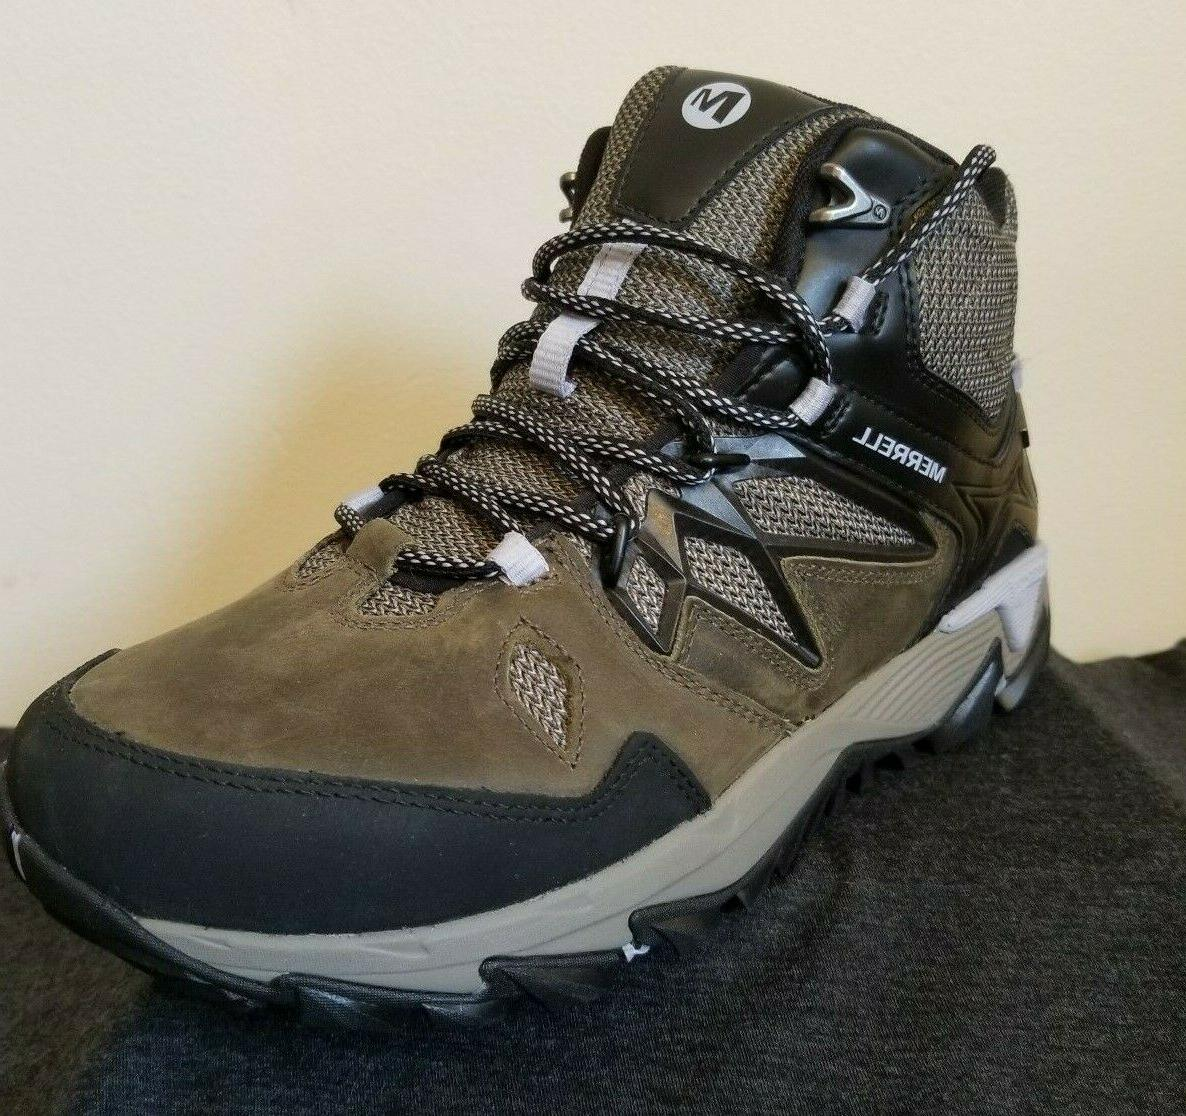 New Out Blaze Gore-tex Mid WaterProof Hiking